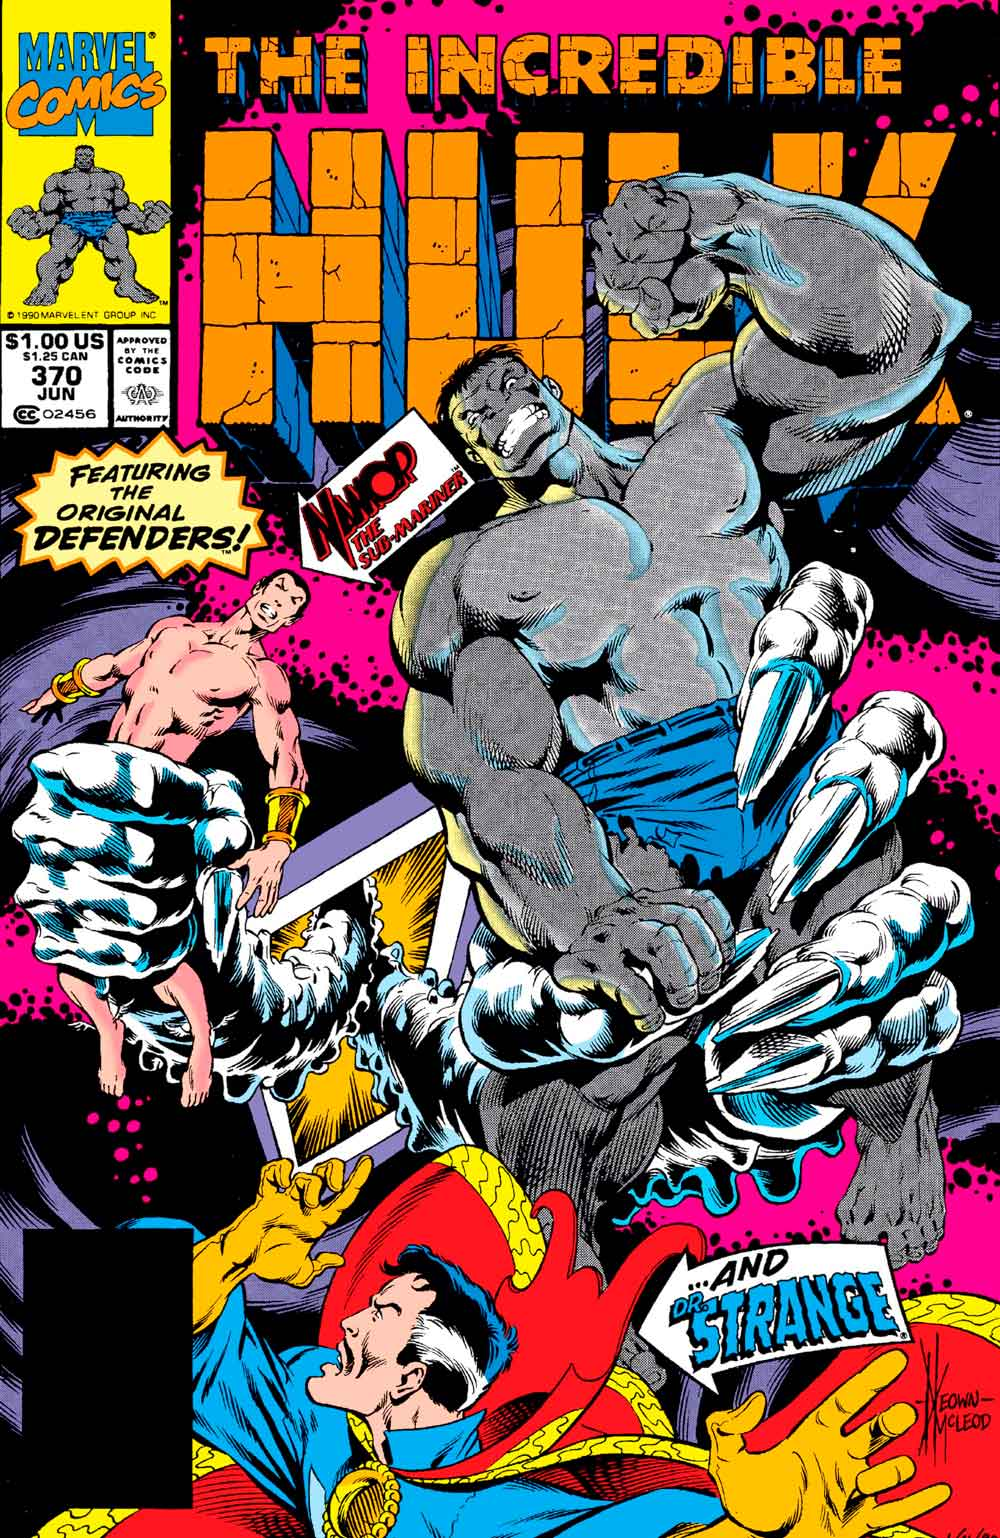 The Incredible Hulk # 370 - Doctor Strange